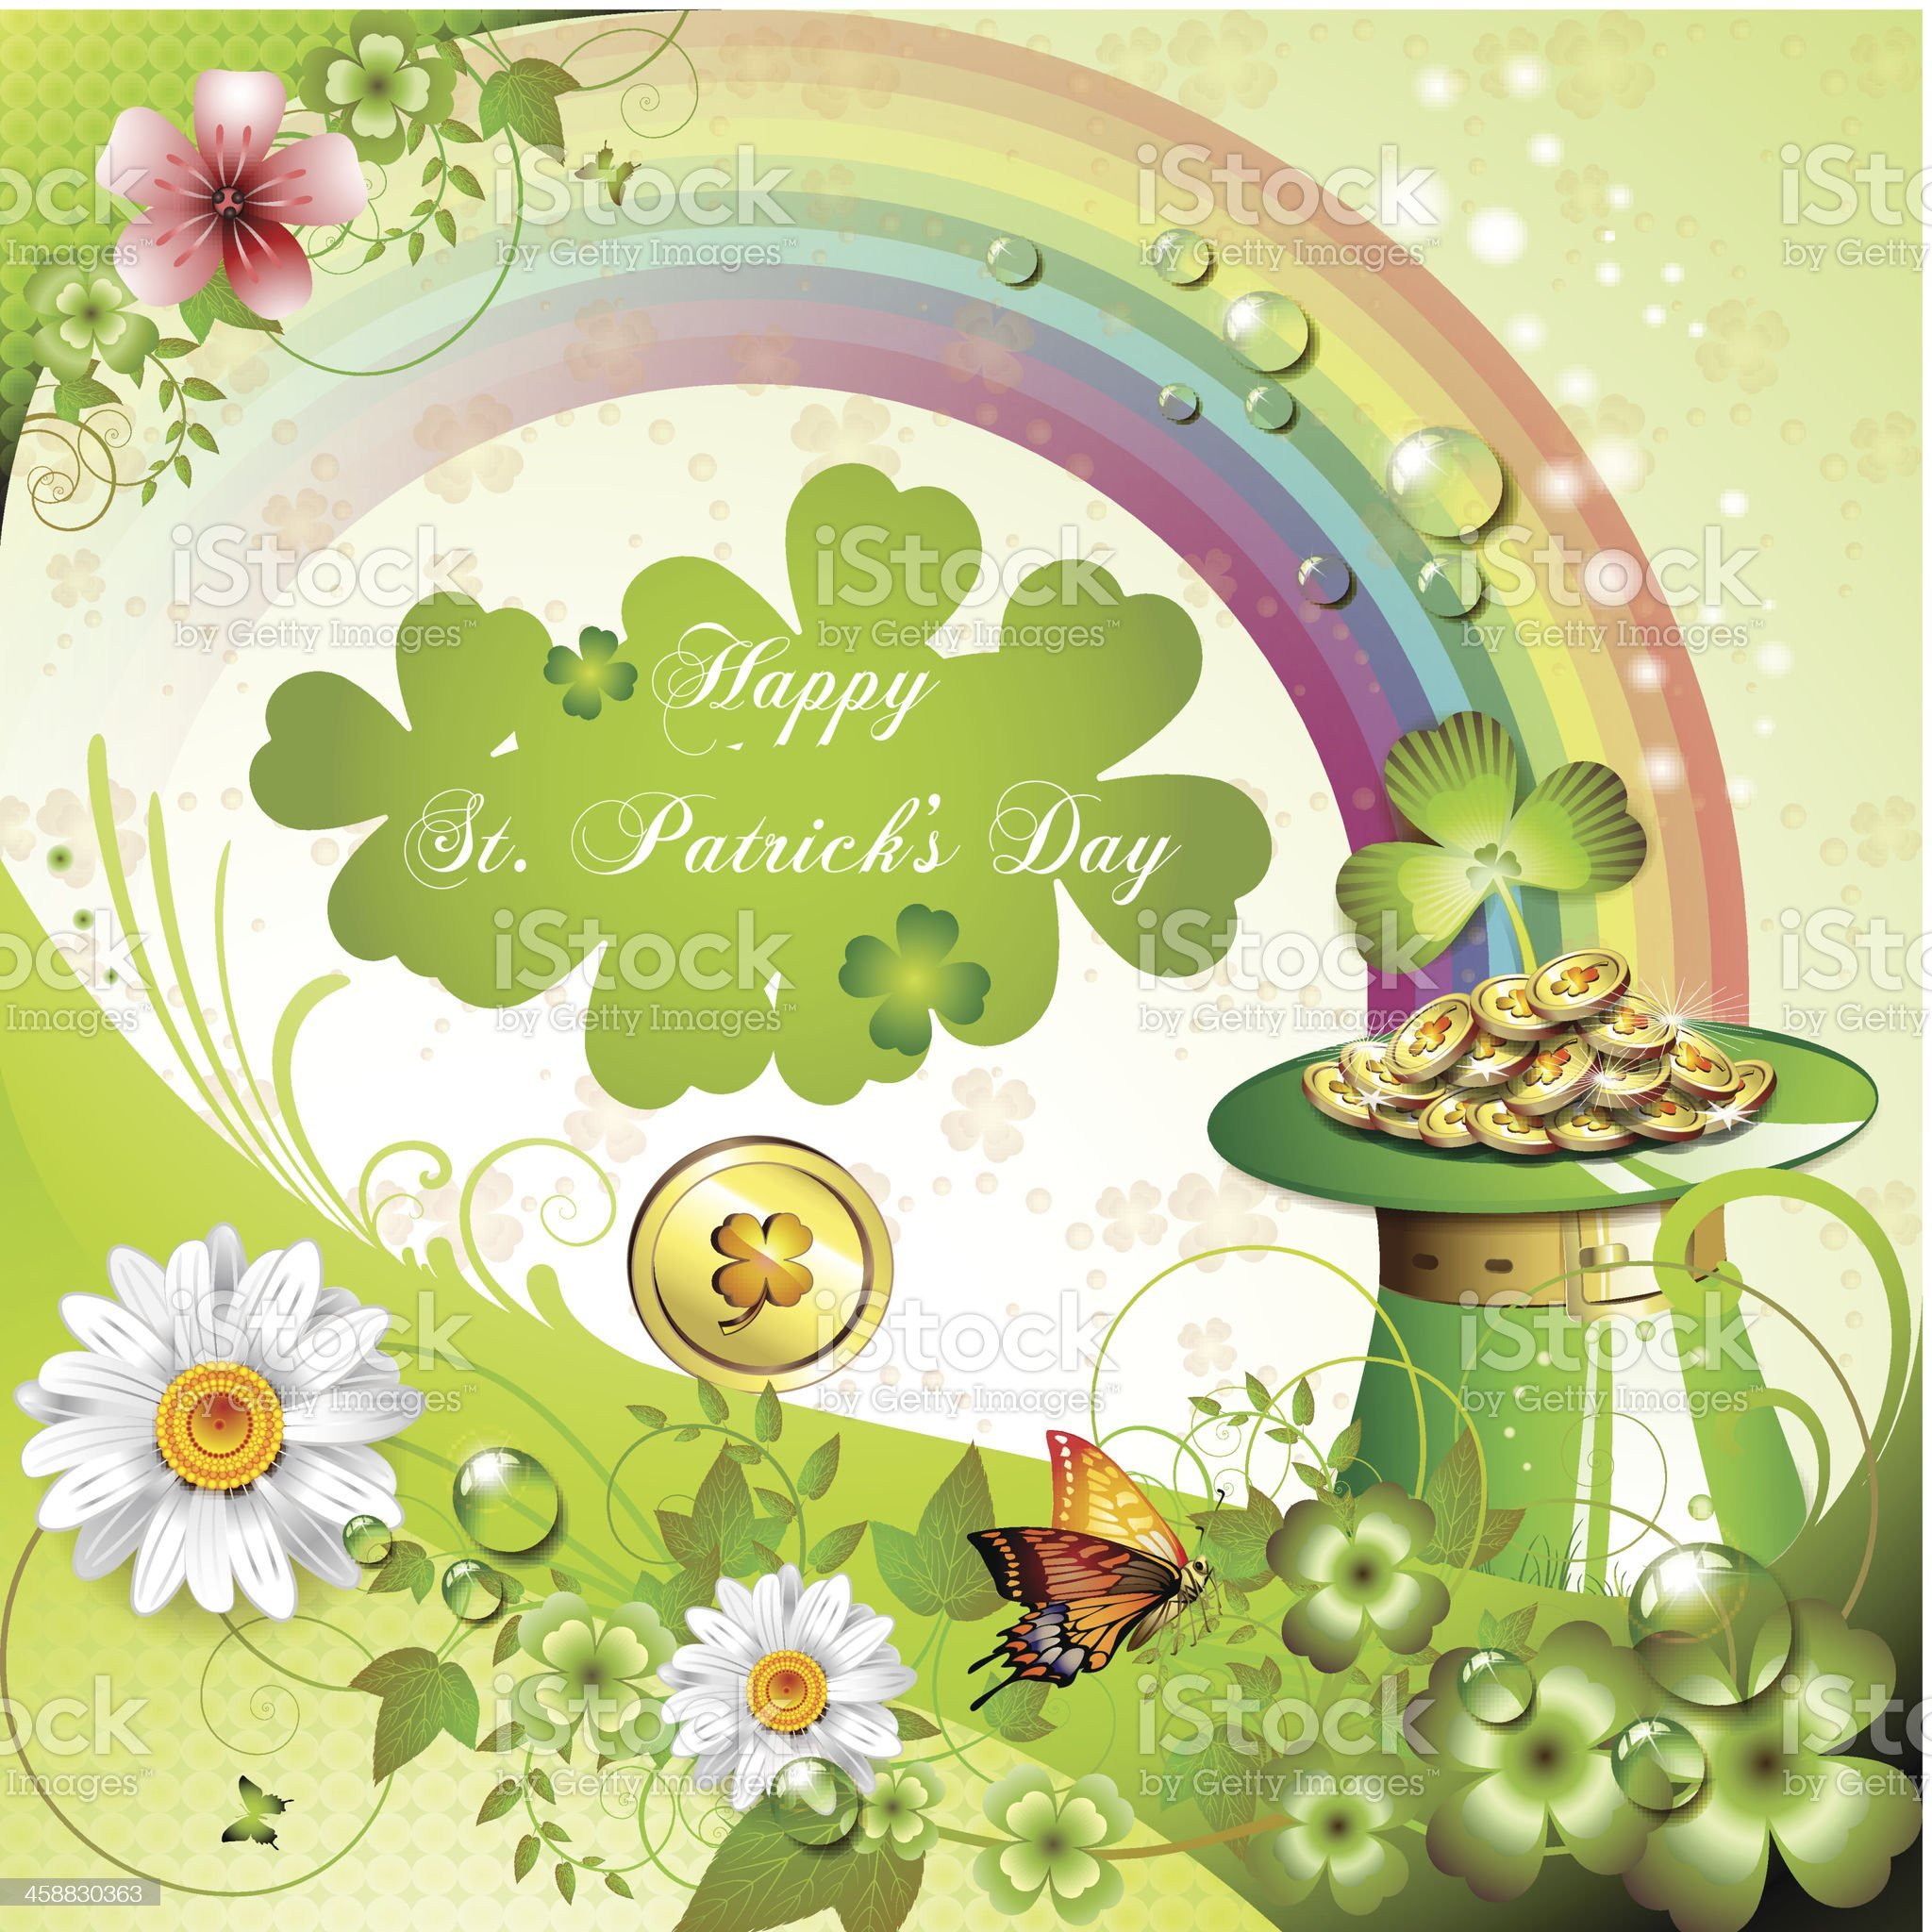 St. Patrick's Day card royalty-free stock vector art